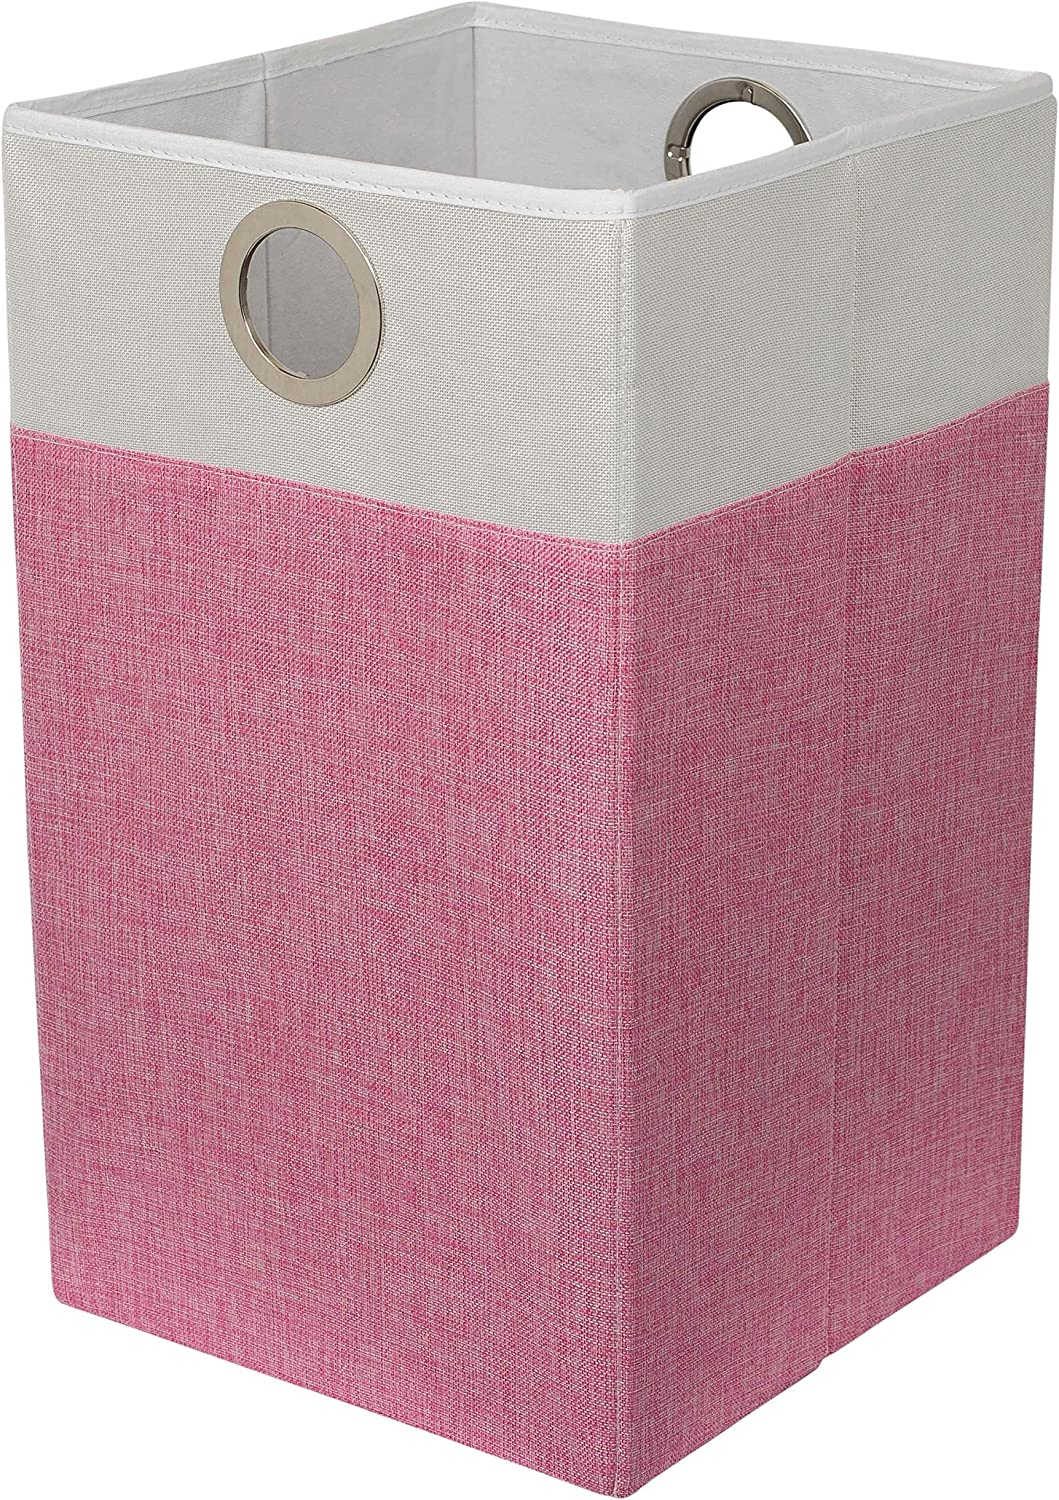 BirdRock Home Folding Cloth Laundry Hamper with Handles - Dirty Clothes Sorter - Easy Storage - Collapsible - Pink and White